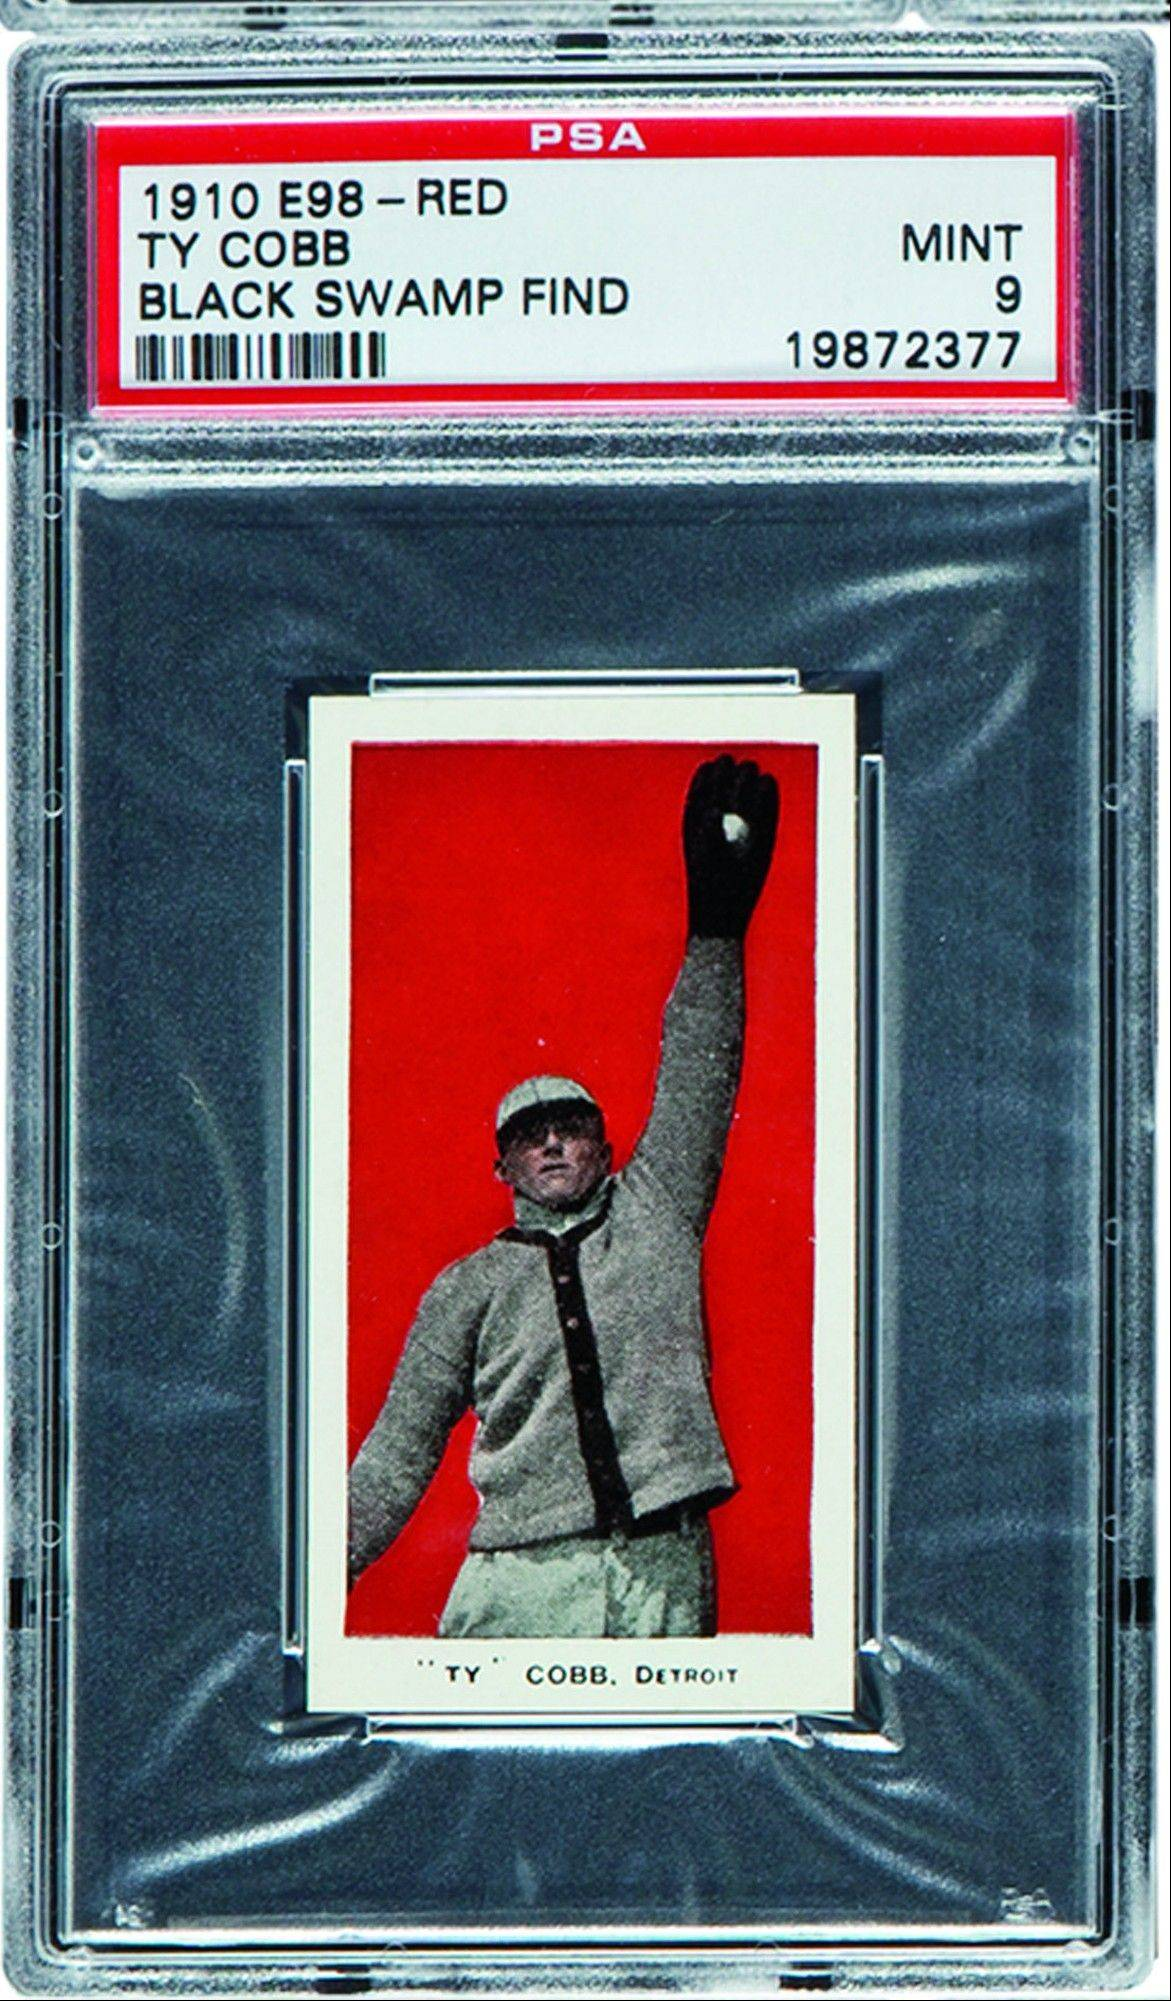 This 1910 E98 Ty Cobb baseball card was found in the attic of a house in Defiance, Ohio, with about 700 others. The best of the bunch -- 37 cards -- are expected to bring a total of $500,000 when they are sold at auction in August.